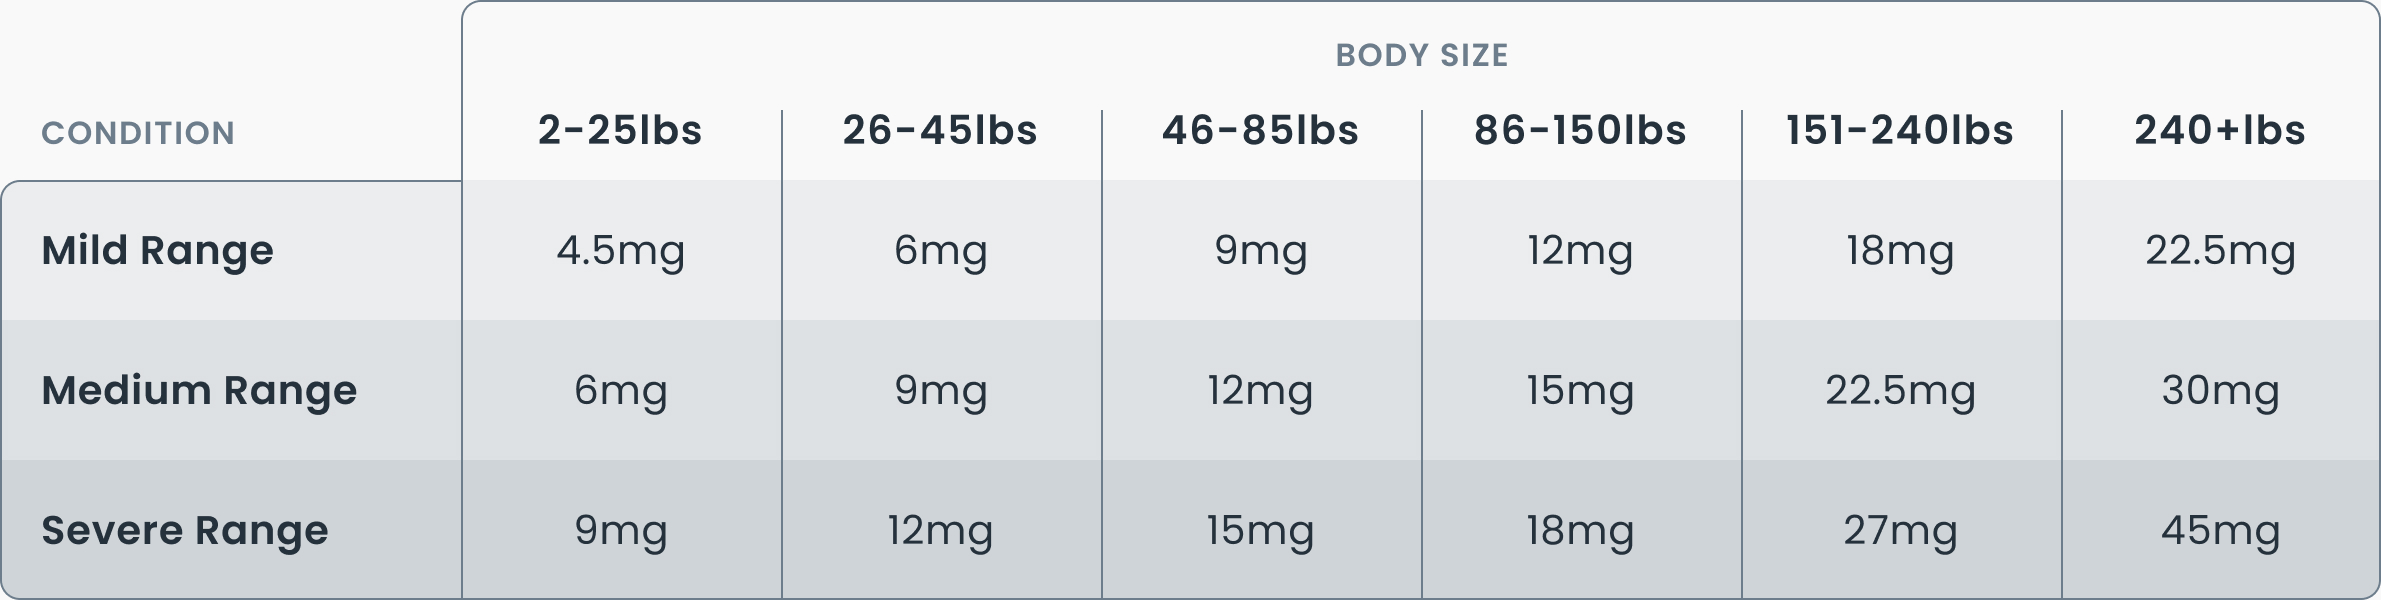 Table showing CBD dosage chart by body size. Mild range condition dosages – 2 to 25 pounds: 4.5 milligrams; 26 to 45 pounds: 6 milligrams; 46 to 85 pounds: 9 milligrams; 86 to 150 pounds: 12 milligrams; 151 to 240 pounds: 18 milligrams; above 240 pounds: 22.5 milligrams. Medium range condition dosages – 2 to 25 pounds: 6 milligrams; 26 to 45 pounds: 9 milligrams; 46 to 85 pounds: 12 milligrams; 86 to 150 pounds: 15 milligrams; 151 to 240 pounds: 22.5 milligrams; above 240 pounds: 30 milligrams. Severe range condition dosages – 2 to 25 pounds: 9 milligrams; 26 to 45 pounds: 12 milligrams; 46 to 85 pounds: 15 milligrams; 86 to 150 pounds: 18 milligrams; 151 to 240 pounds: 27 milligrams; above 240 pounds: 45 milligrams.